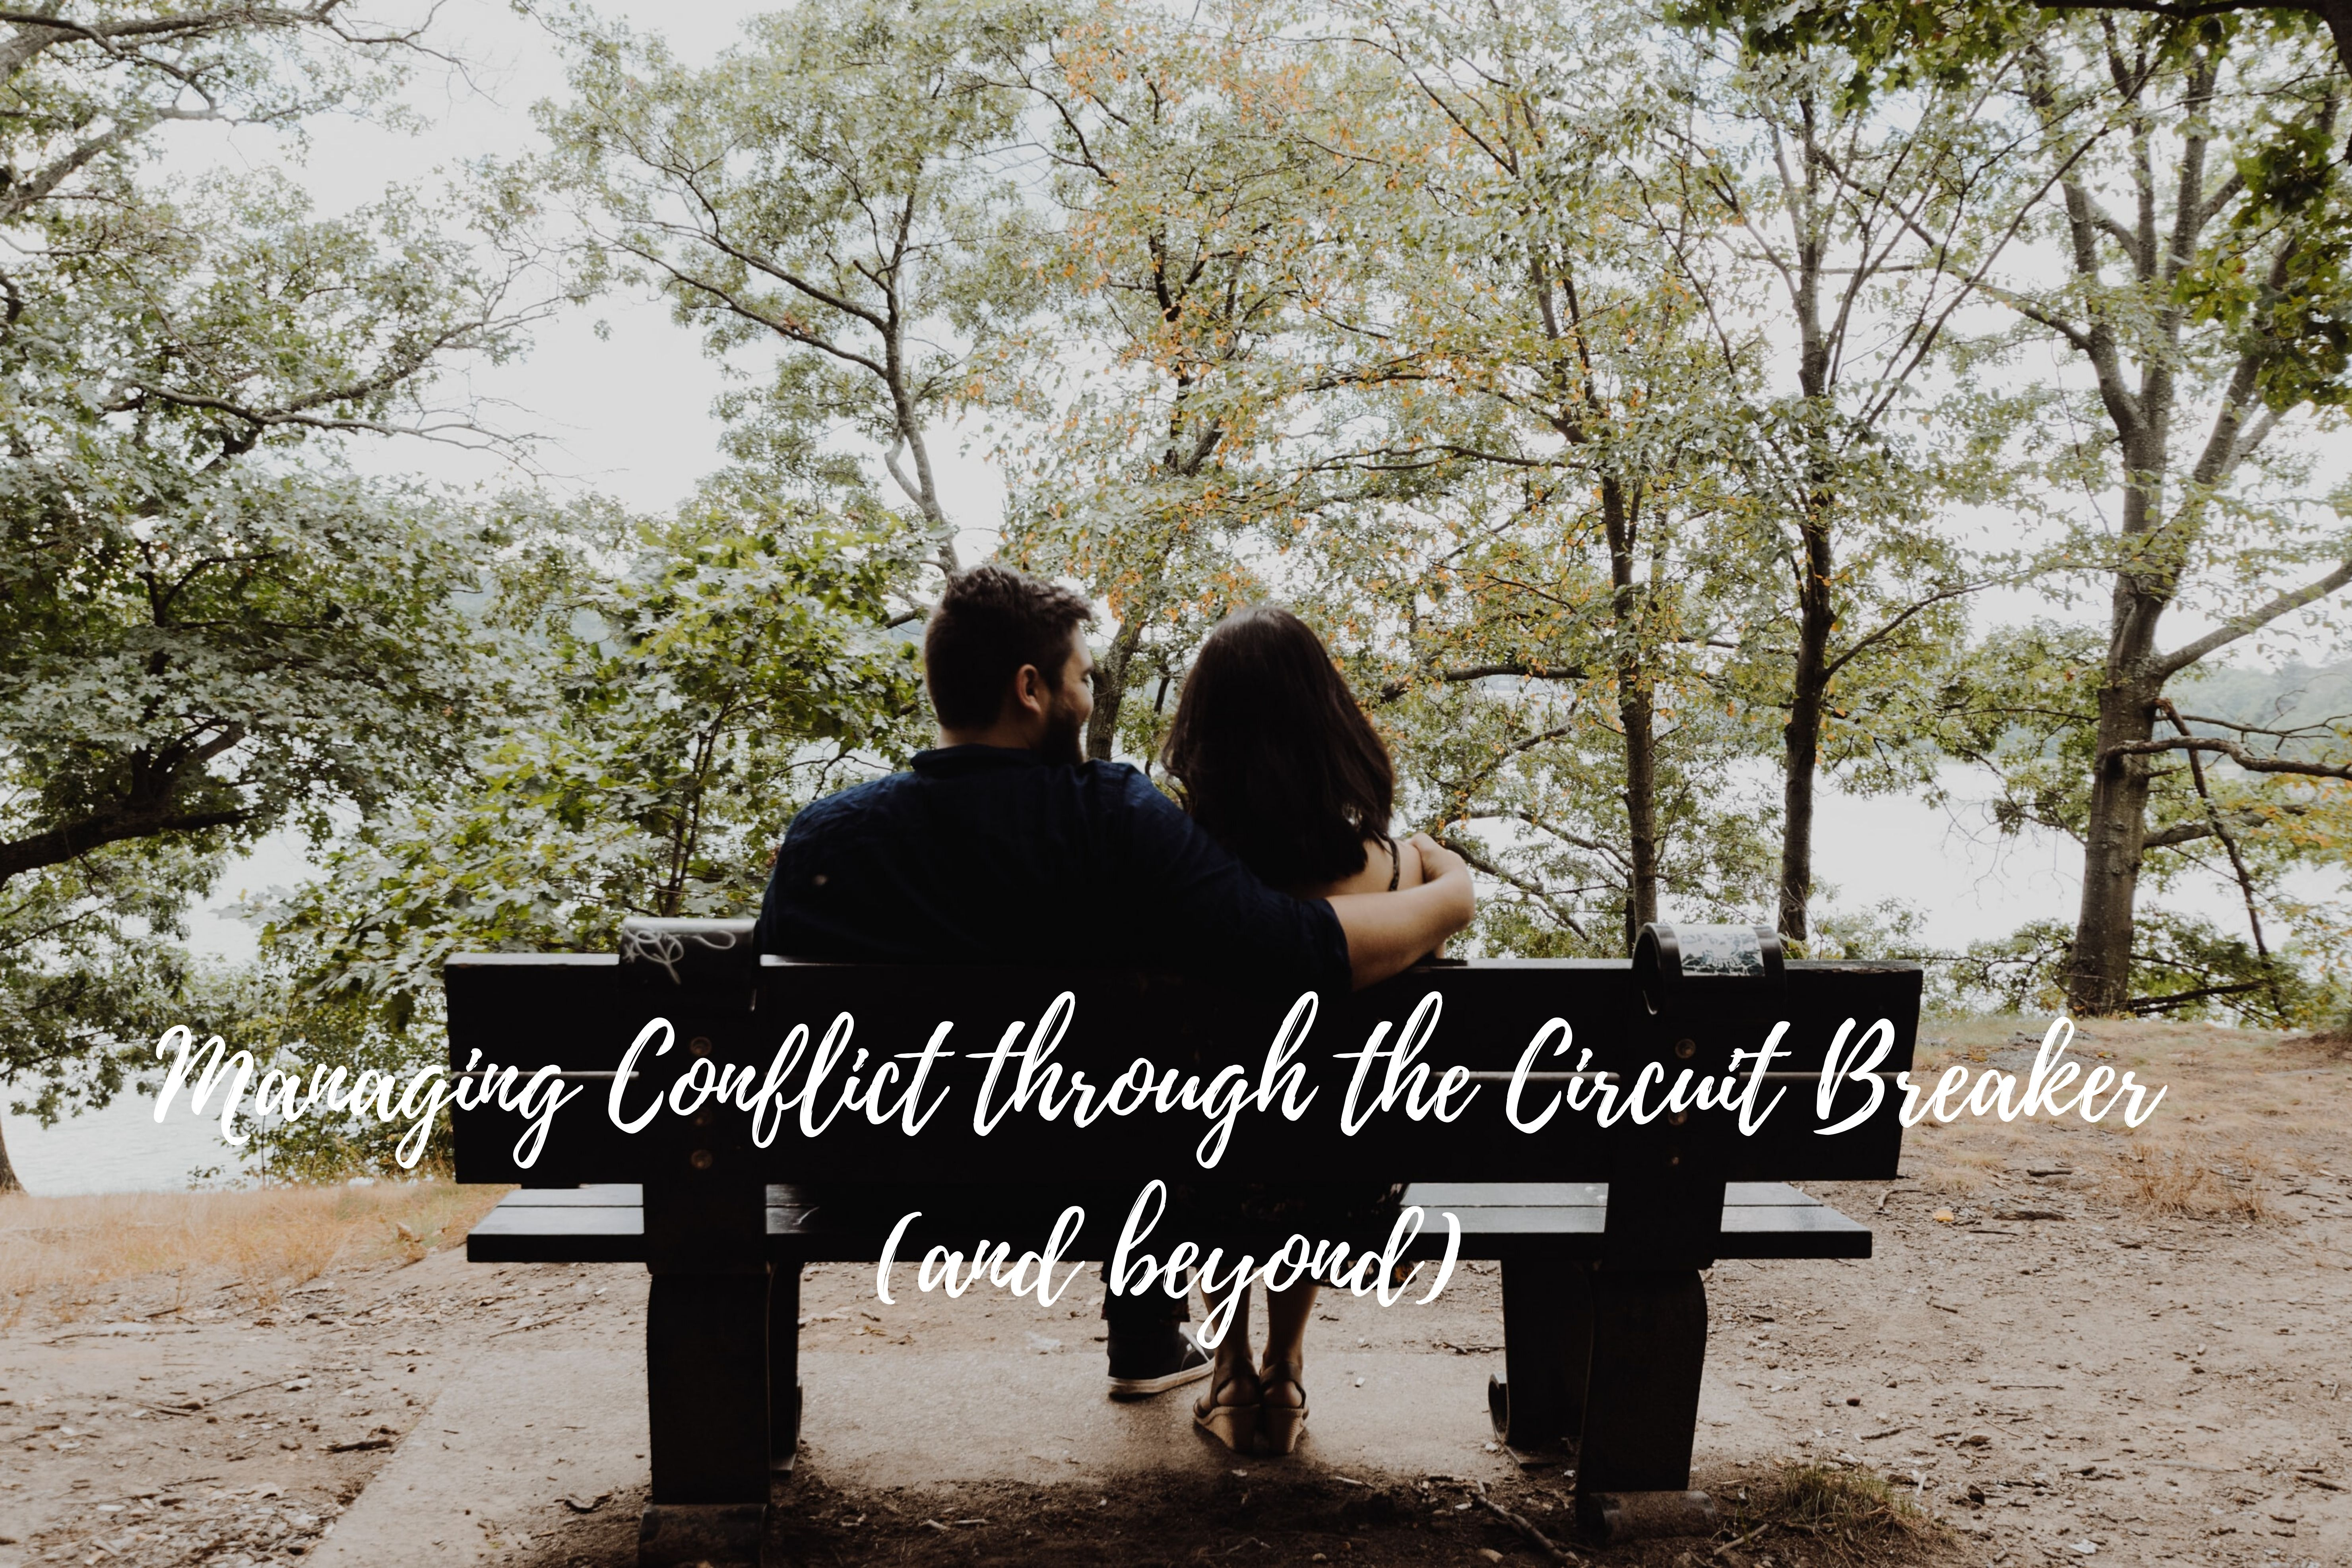 Managing Conflict through the Circuit Breaker Period (and Beyond)